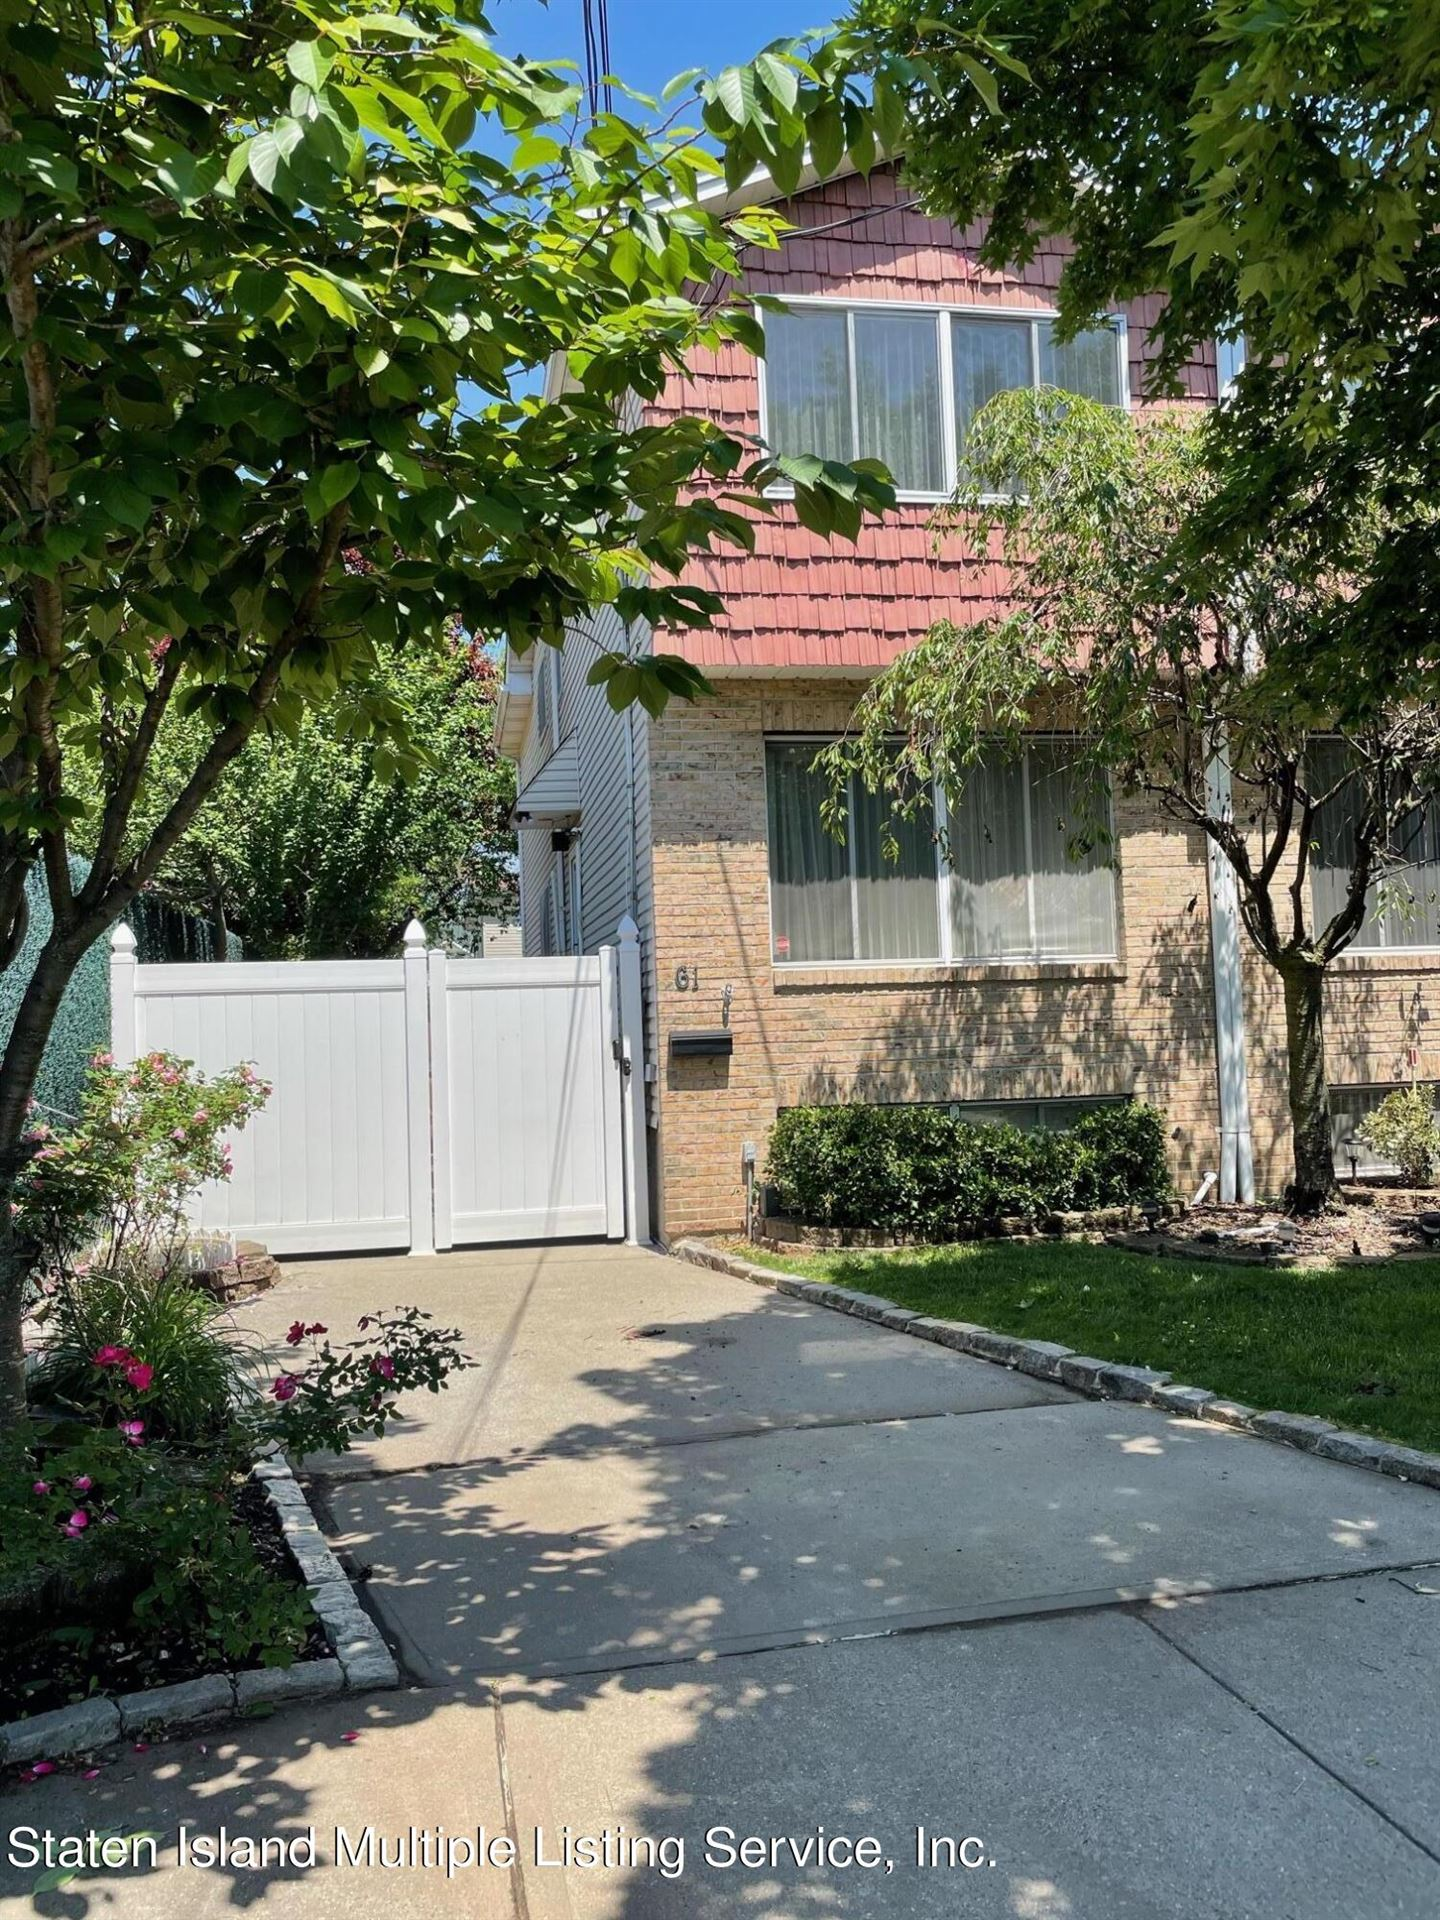 Photo for 61 Butler Place, Staten Island, NY 10305 (MLS # 1146411)